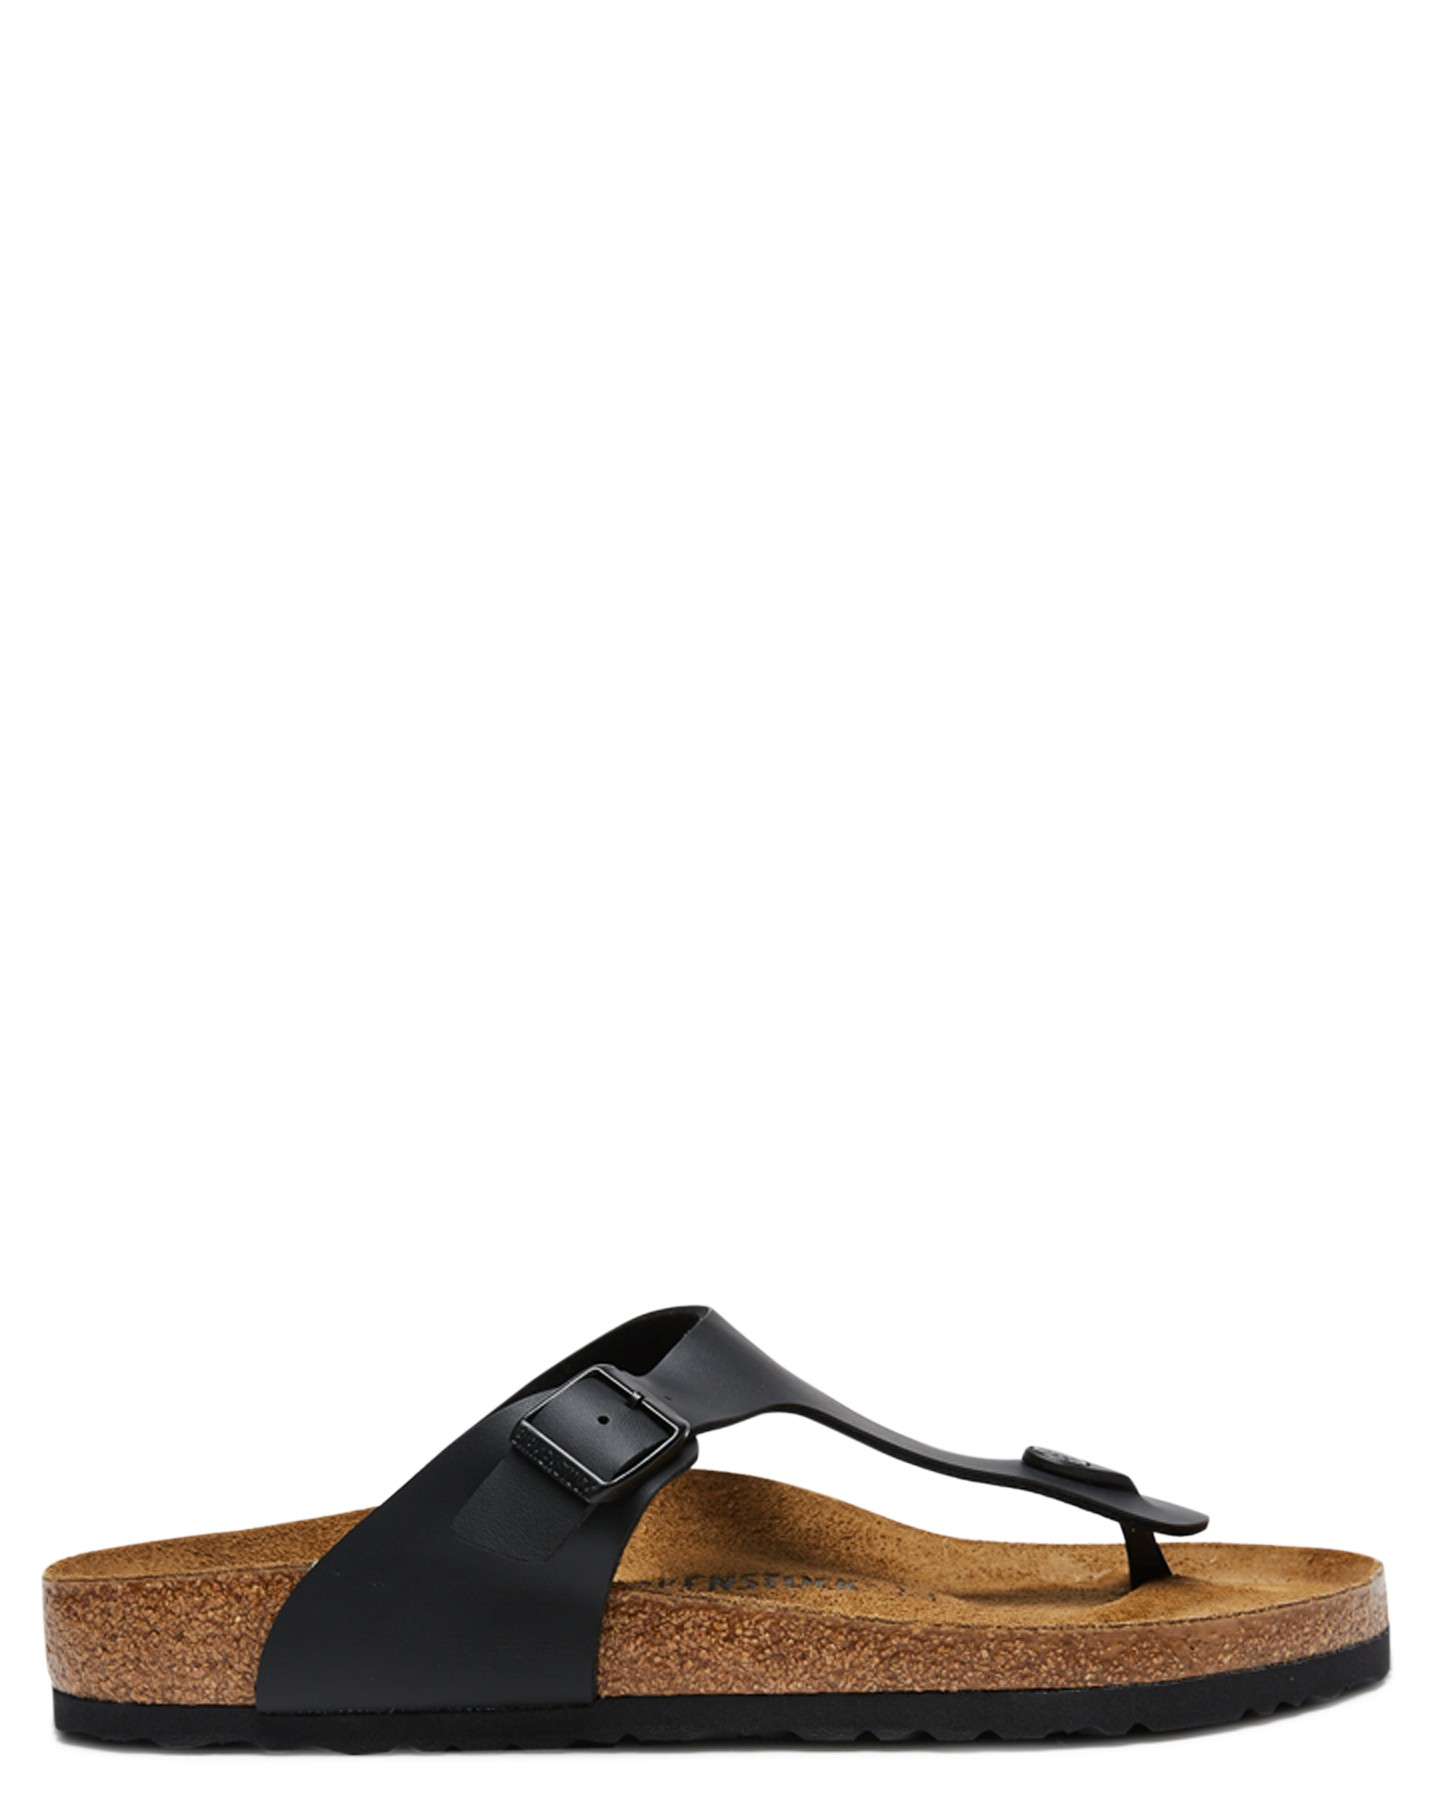 Birkenstock Mens Regular Gizeh Sandal Black